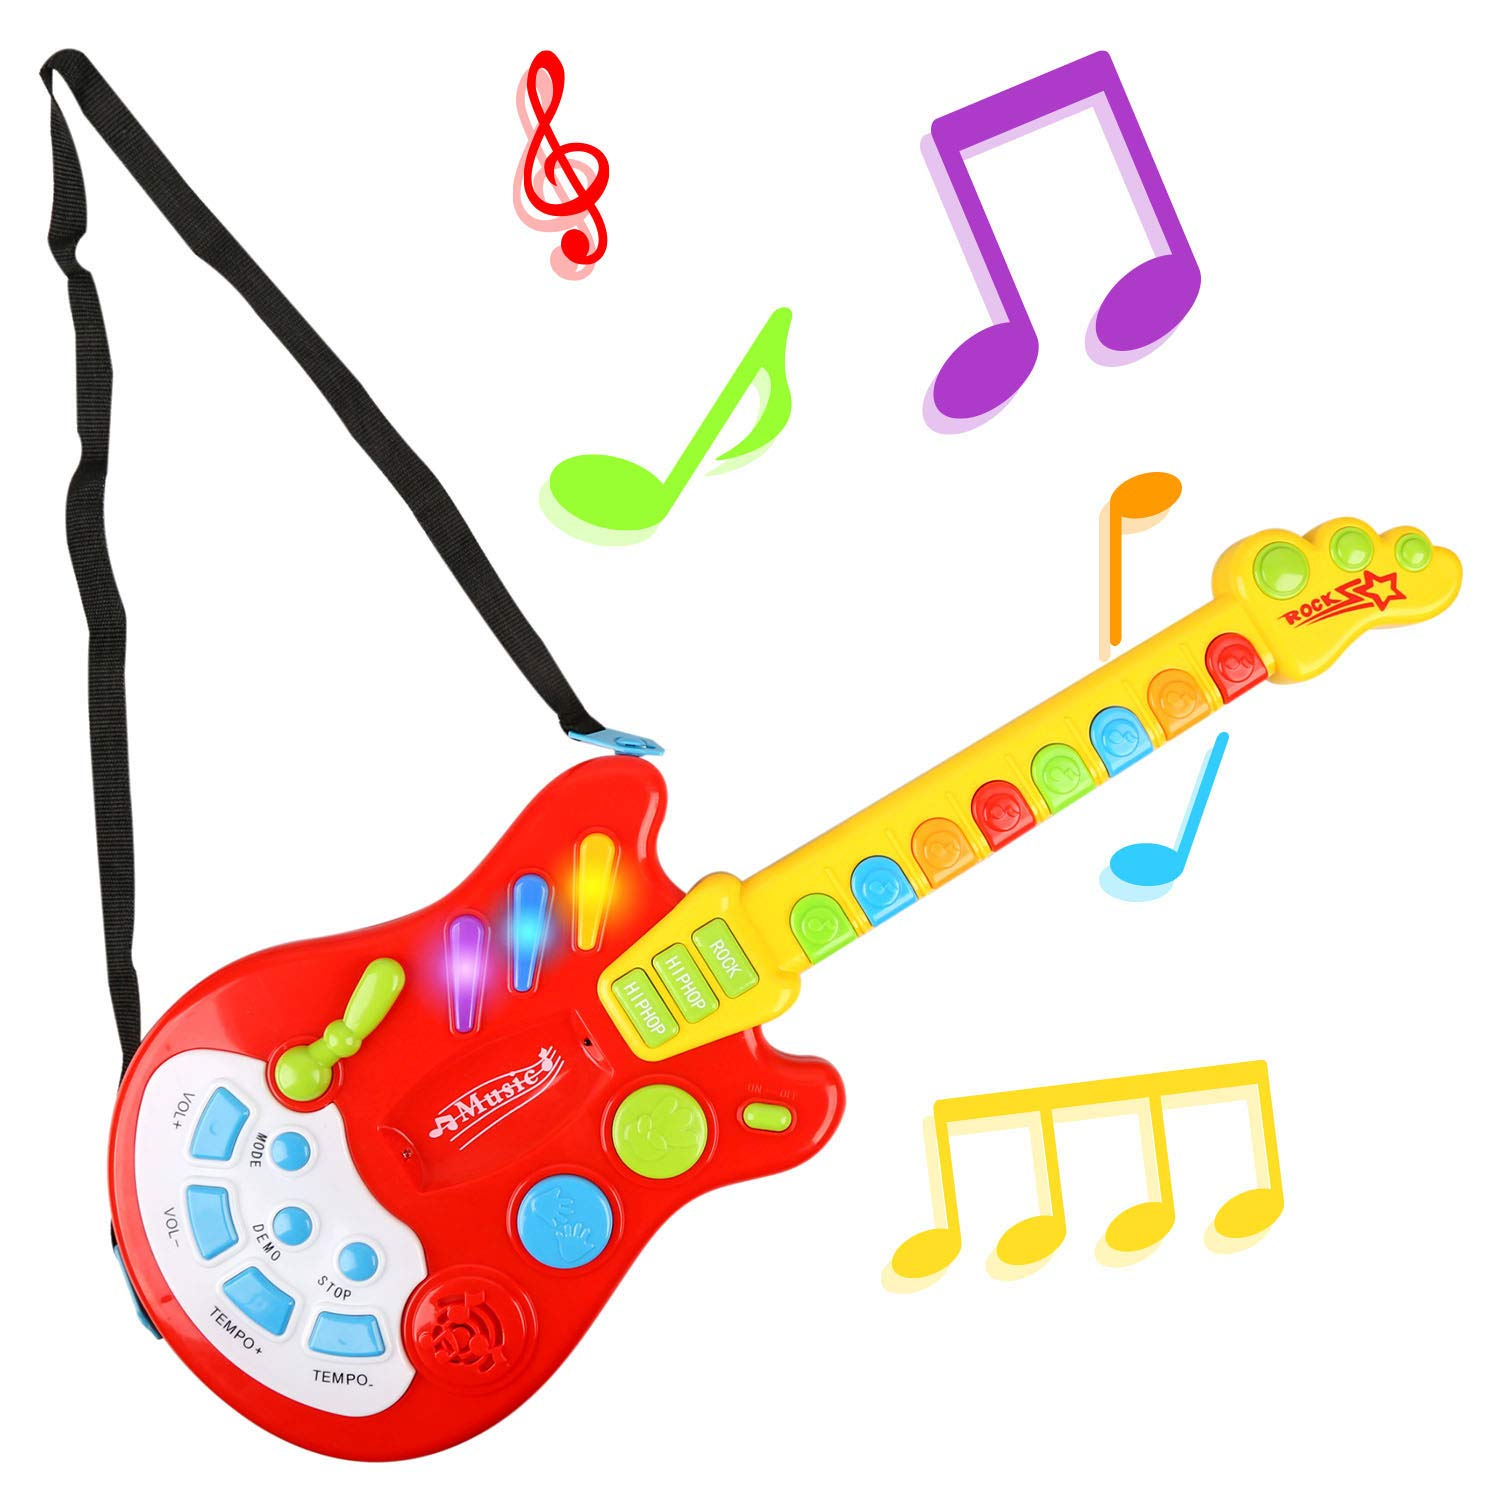 Urban Kit Electric Guitar Toy with Sound and Lights   Baby Electric Guitar   Toy Guitar for Toddlers   Music Toy Guitar   Guitar for Kids Ages 3 and Up